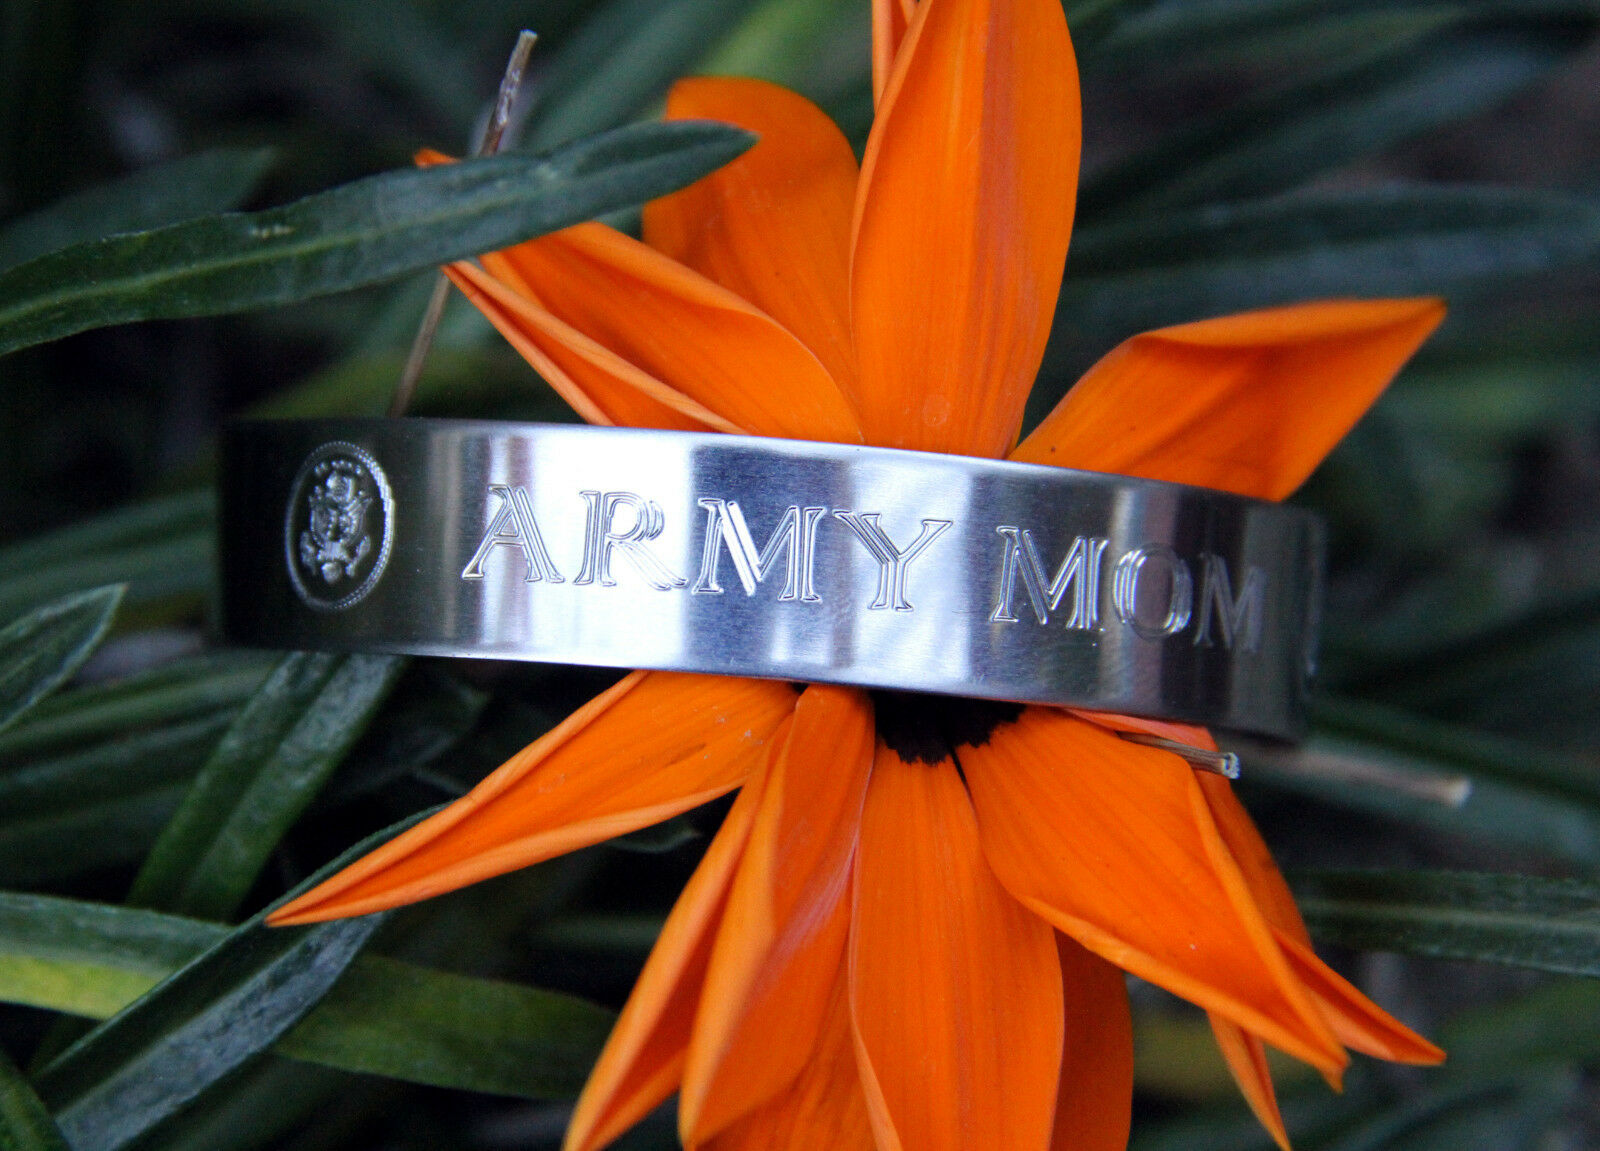 US ARMY MOM COLLECTOR BRACELET